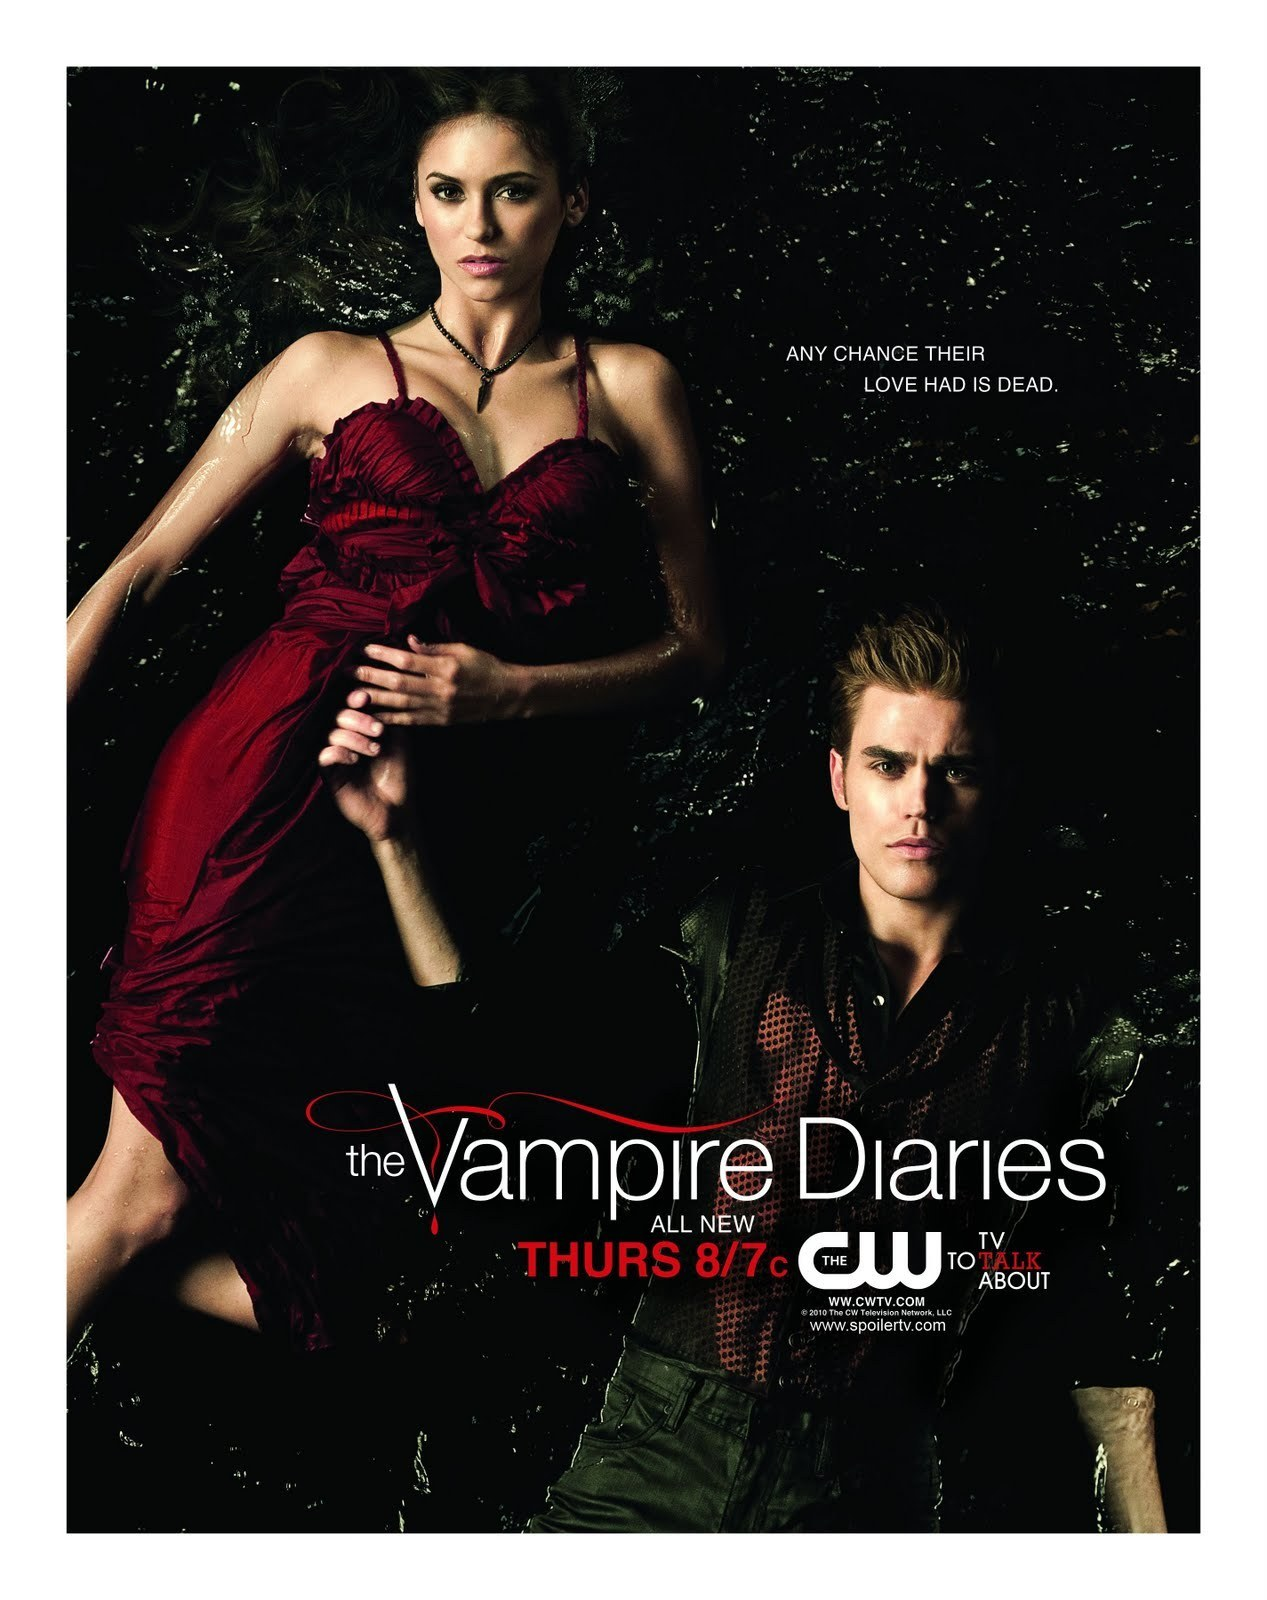 The Vampire Diaries - Season 2 - November Sweeps Poster